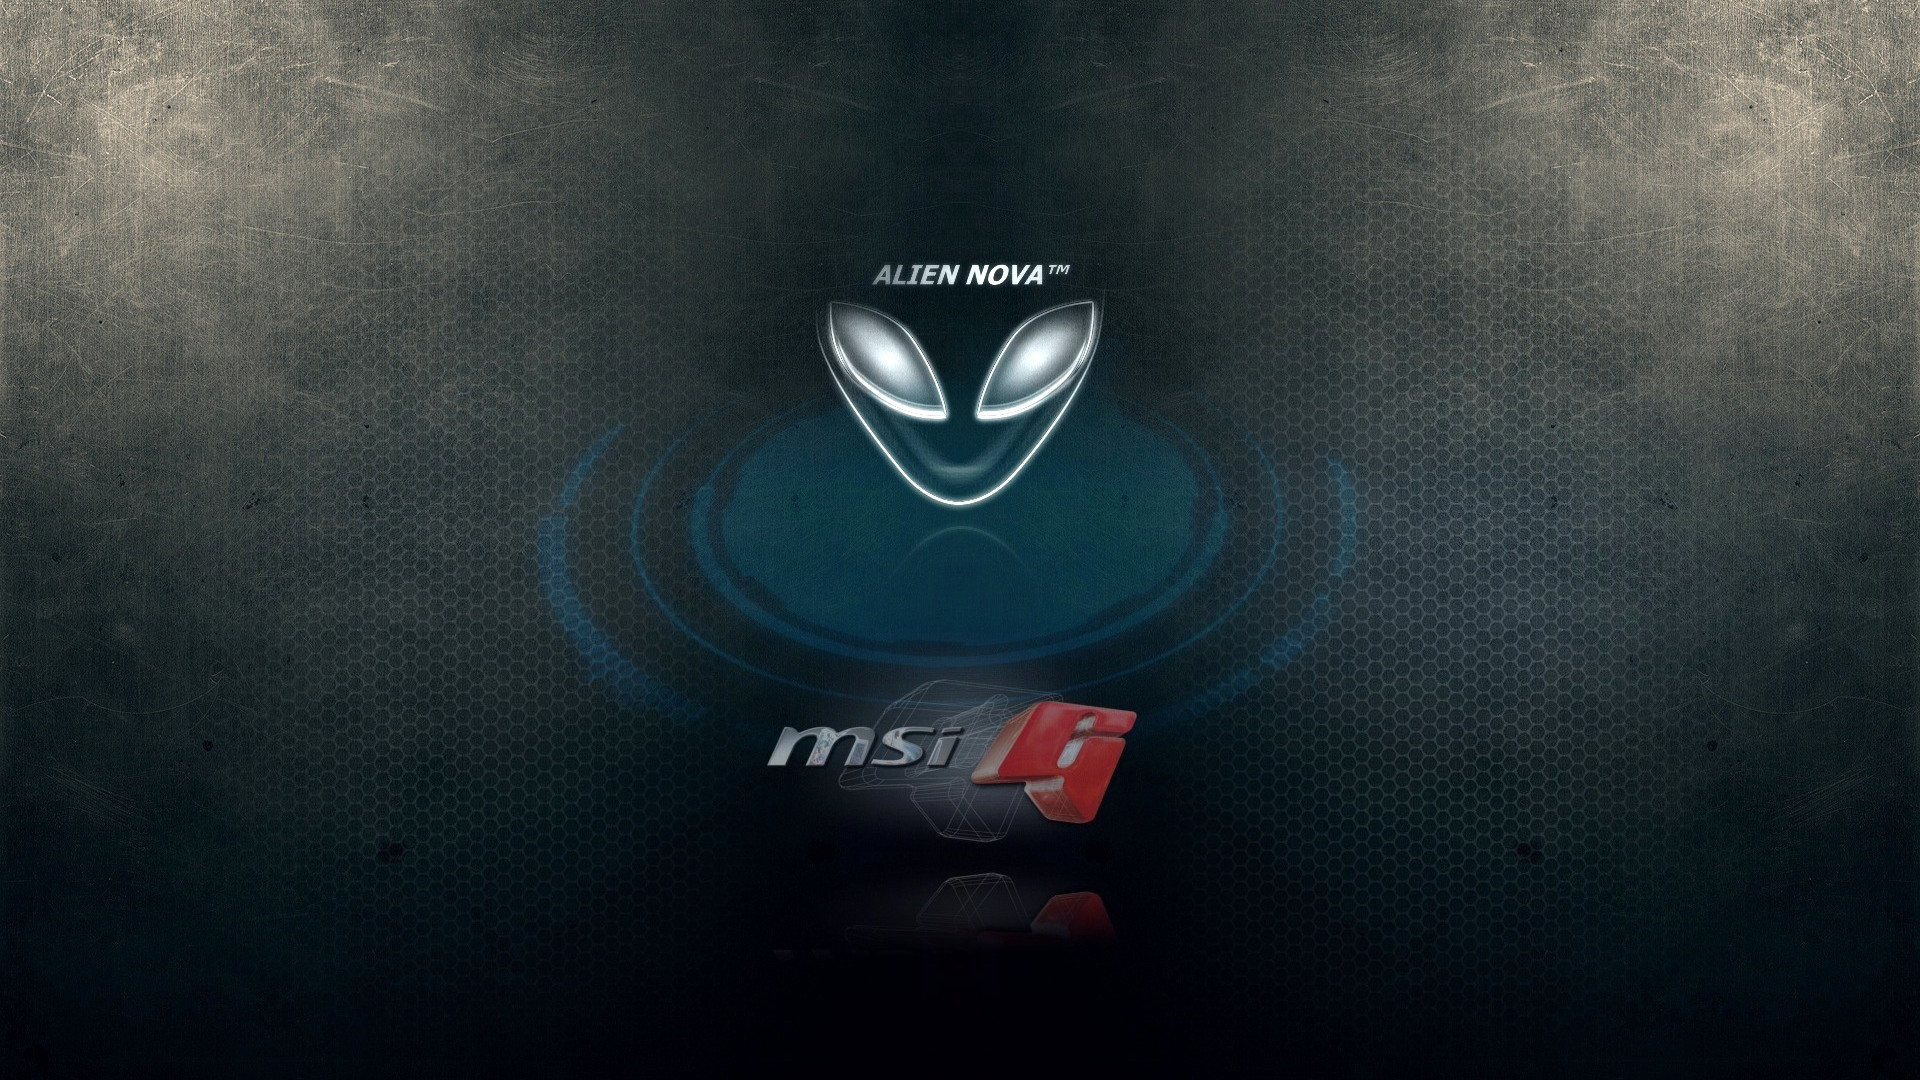 alienware and MSi g logo hd 1080p wallpaper. compatible for .